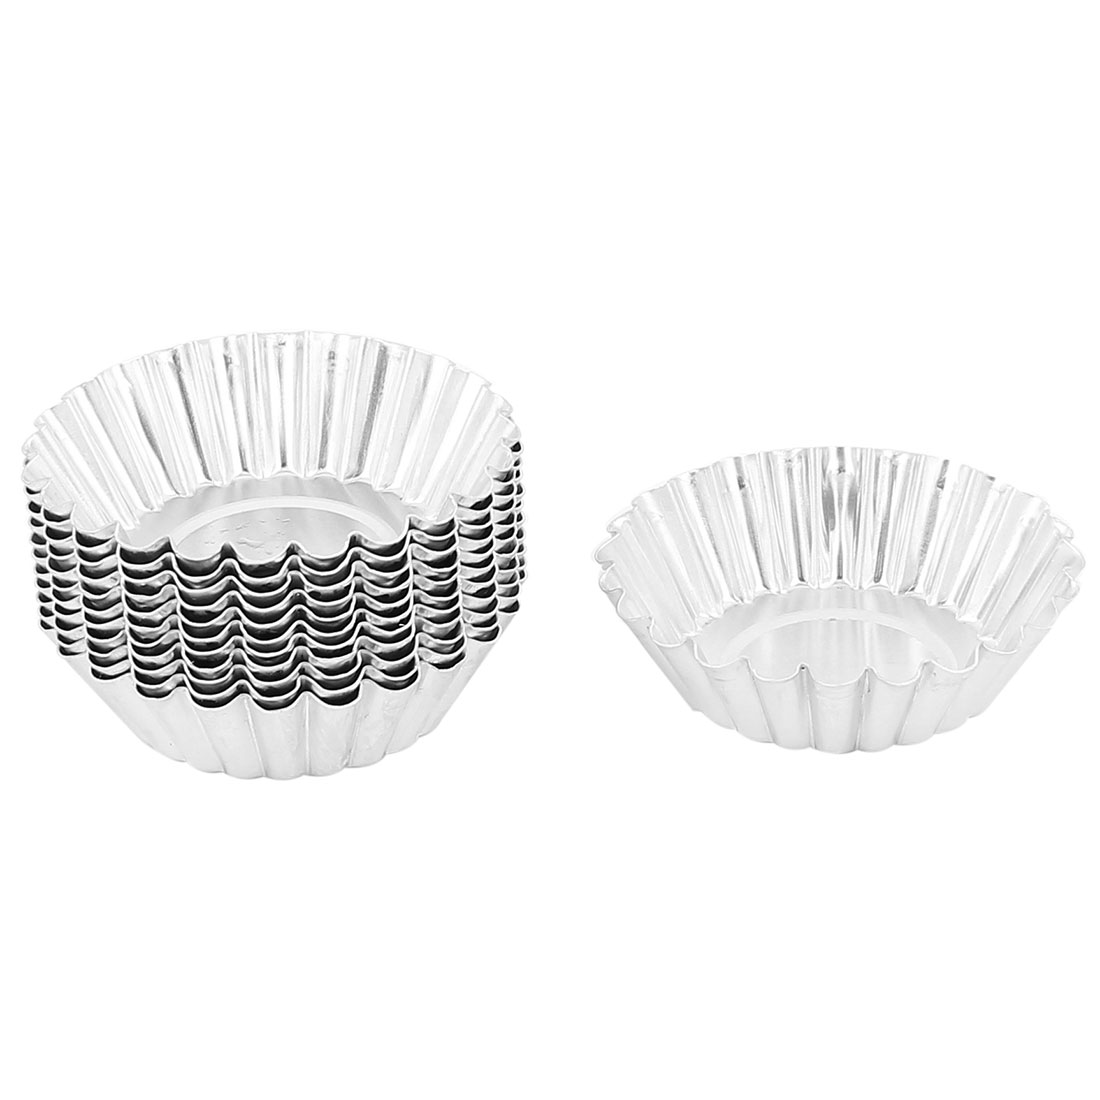 Egg Tart Cupcake Cake Aluminum Bowl Shape Lined Molds Mould Tin Baking Tool 12pcs